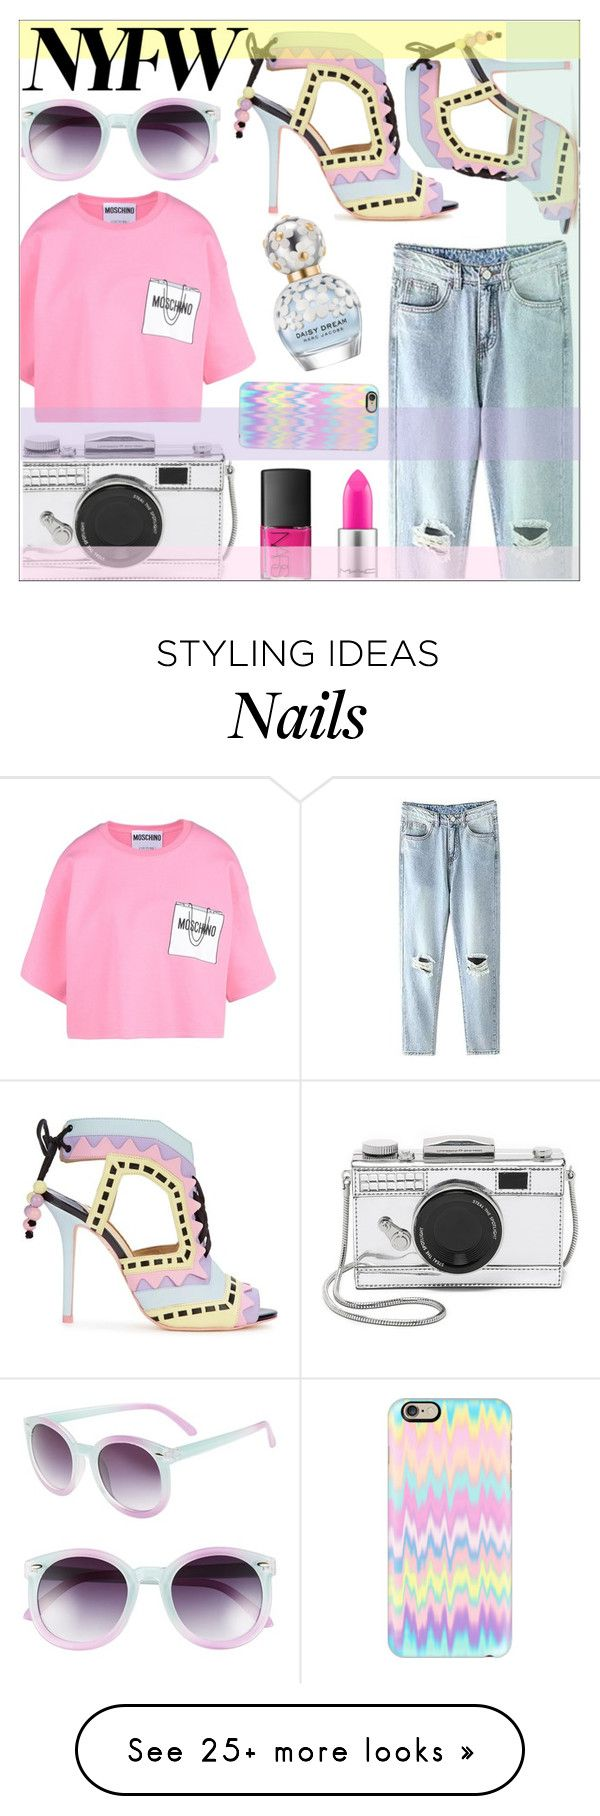 """Crazy Pastel Colors"" by sonny-m on Polyvore featuring Sophia Webster, MAC Cosmetics, Marc Jacobs, Moschino, Kate Spade, NARS Cosmetics, Casetify, Tildon, women's clothing and women"